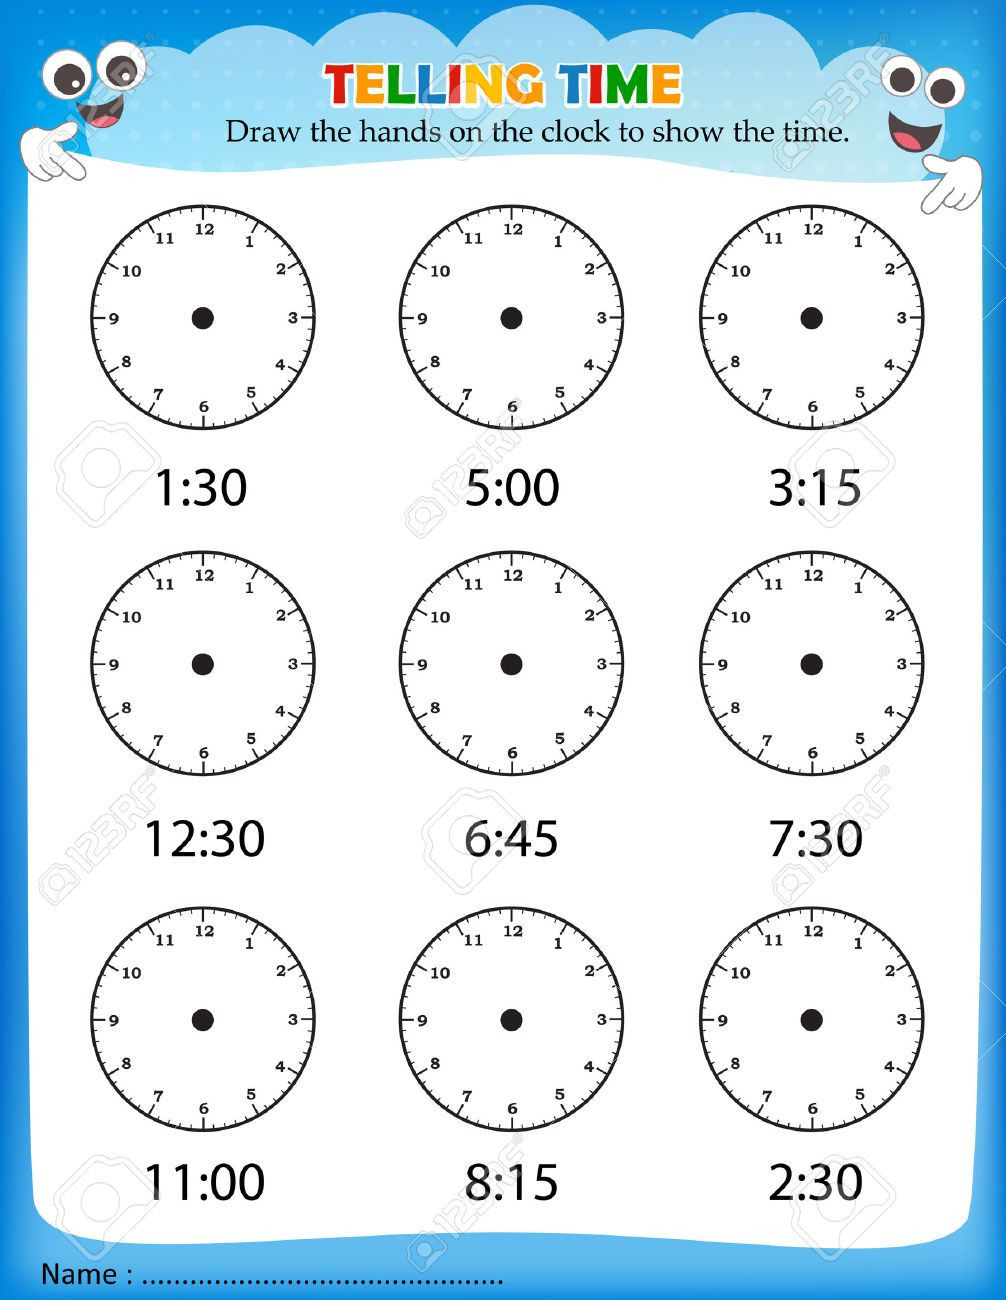 Elapsed Time Worksheets 3rd Grade Telling Time Worksheets for School Printable Kindergarten